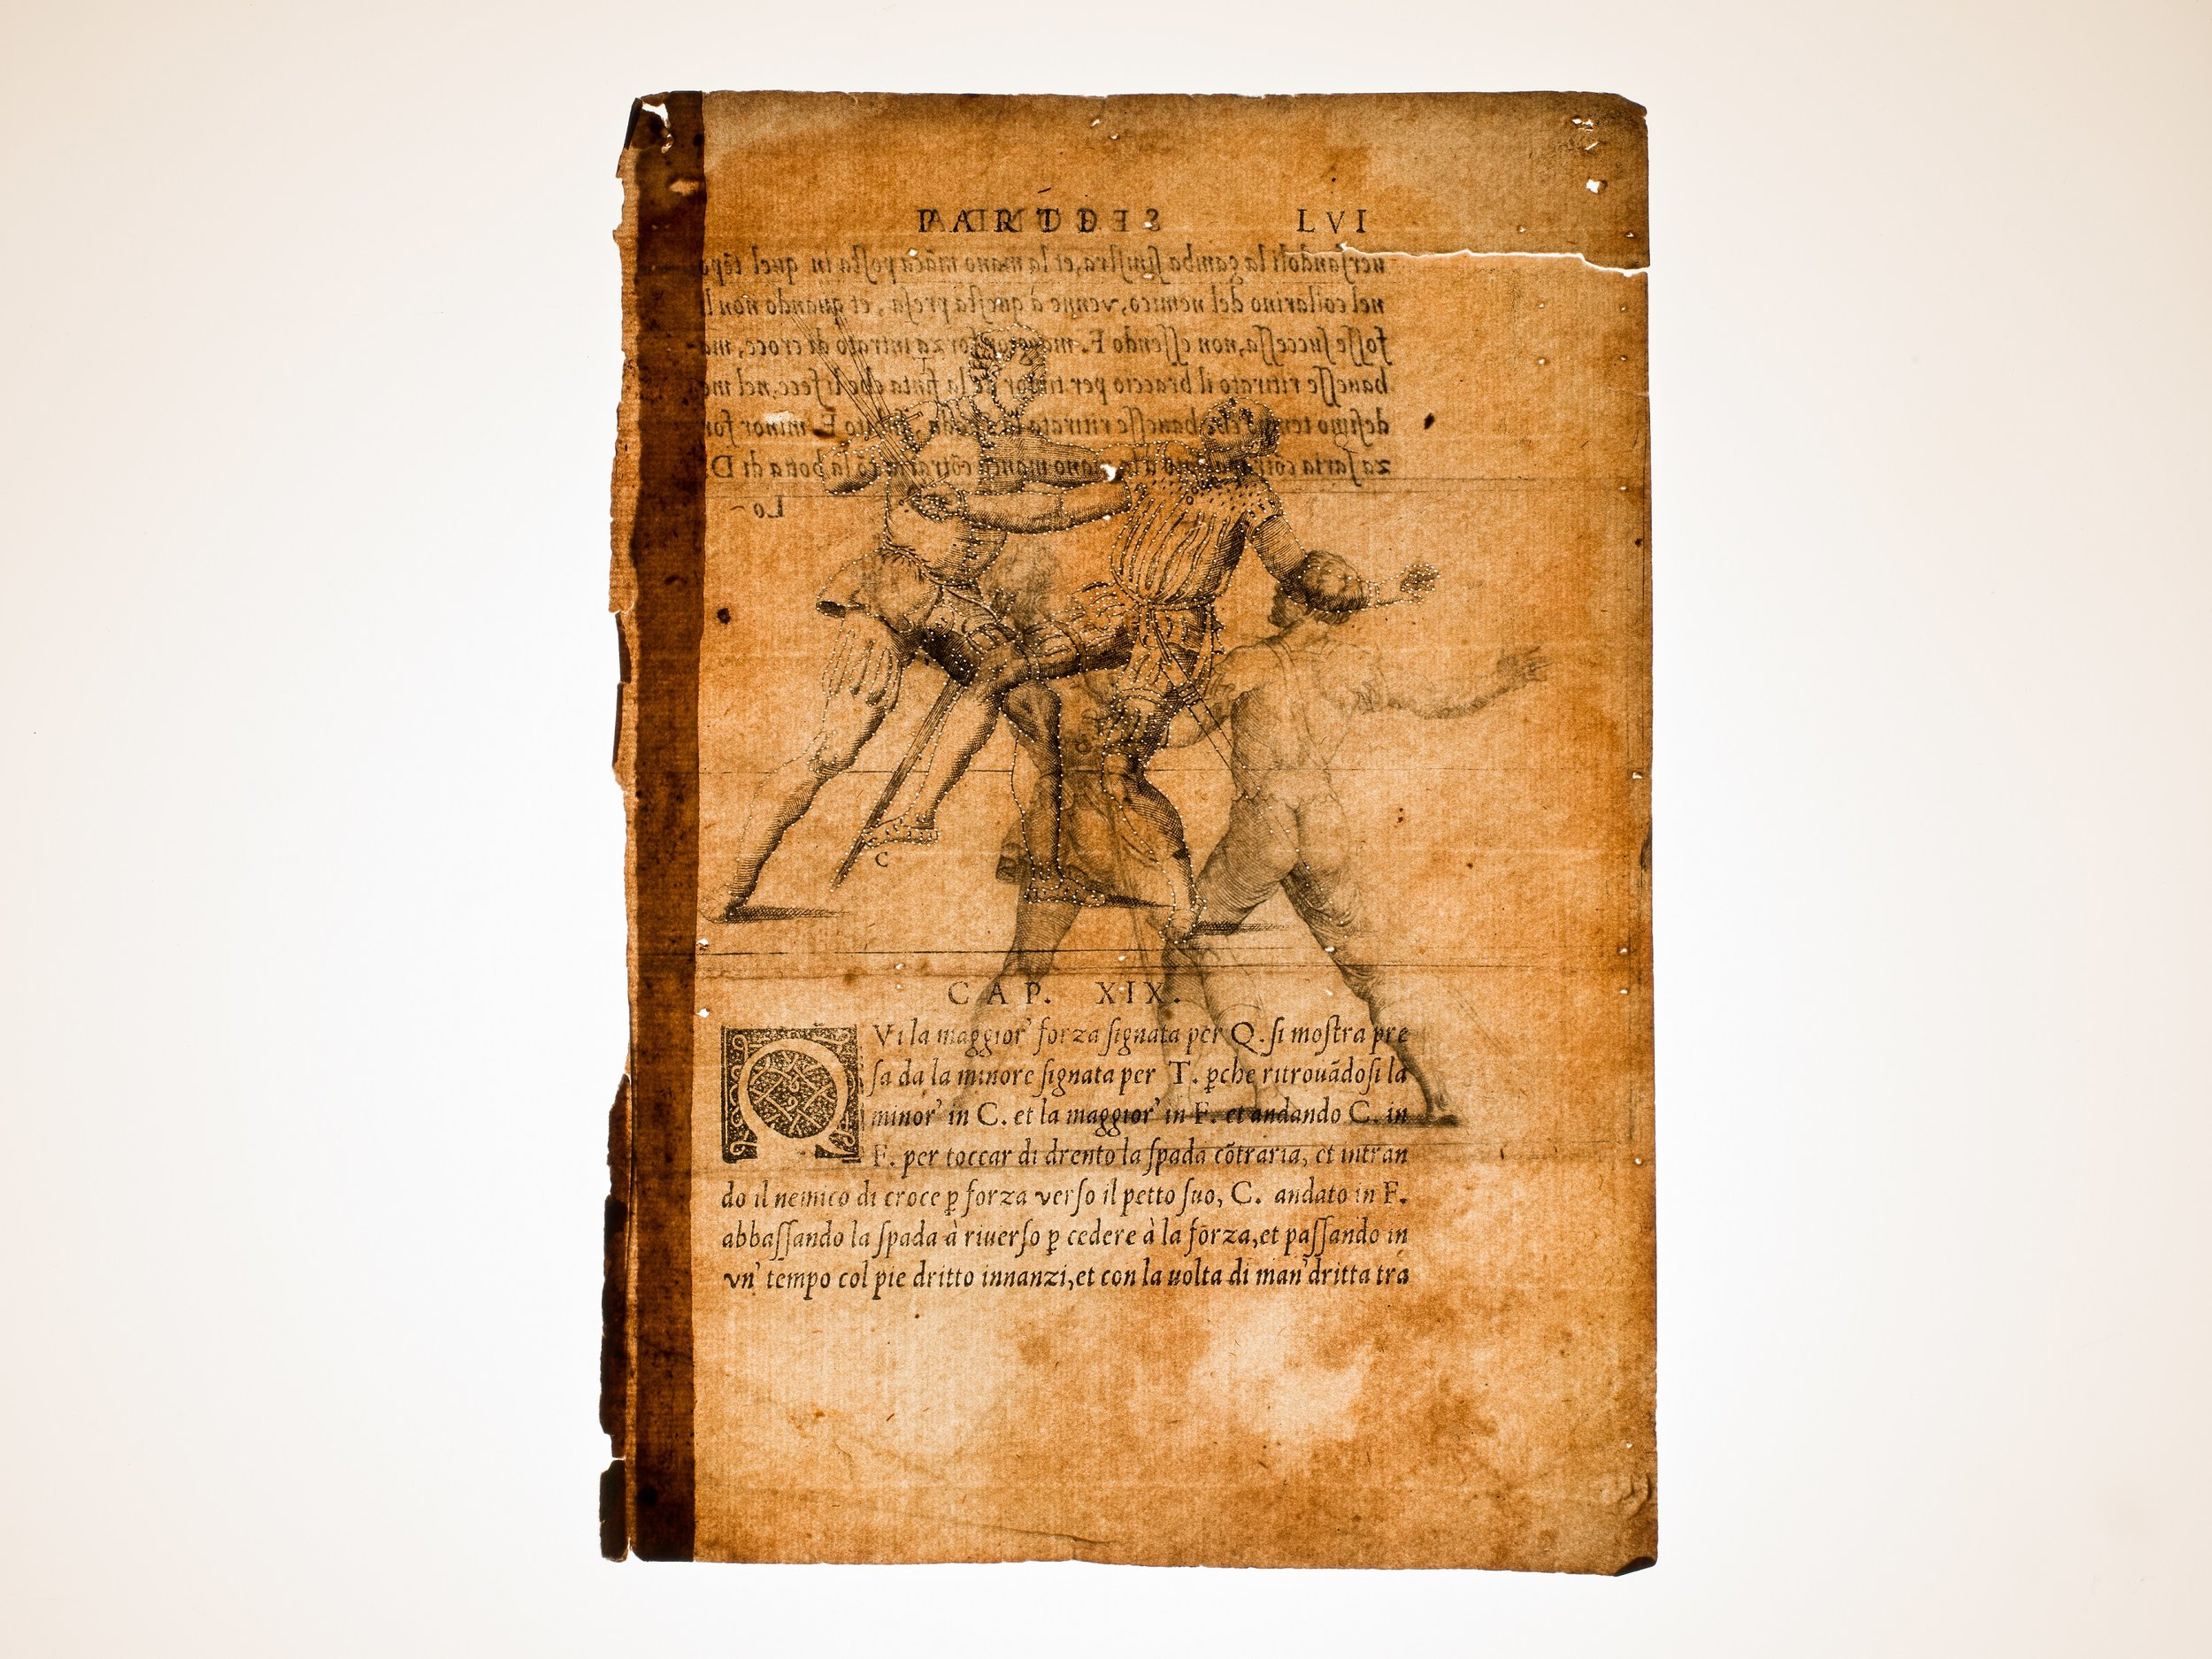 """One of the pages from Camillo Agrippa's """"Trattato di scienza d'arme"""". Rome, Antonio Blado, 1553. The page is pricked and dusted with tracing powder revealing the outline underneath as a preparatory step for the decoration of the wood."""